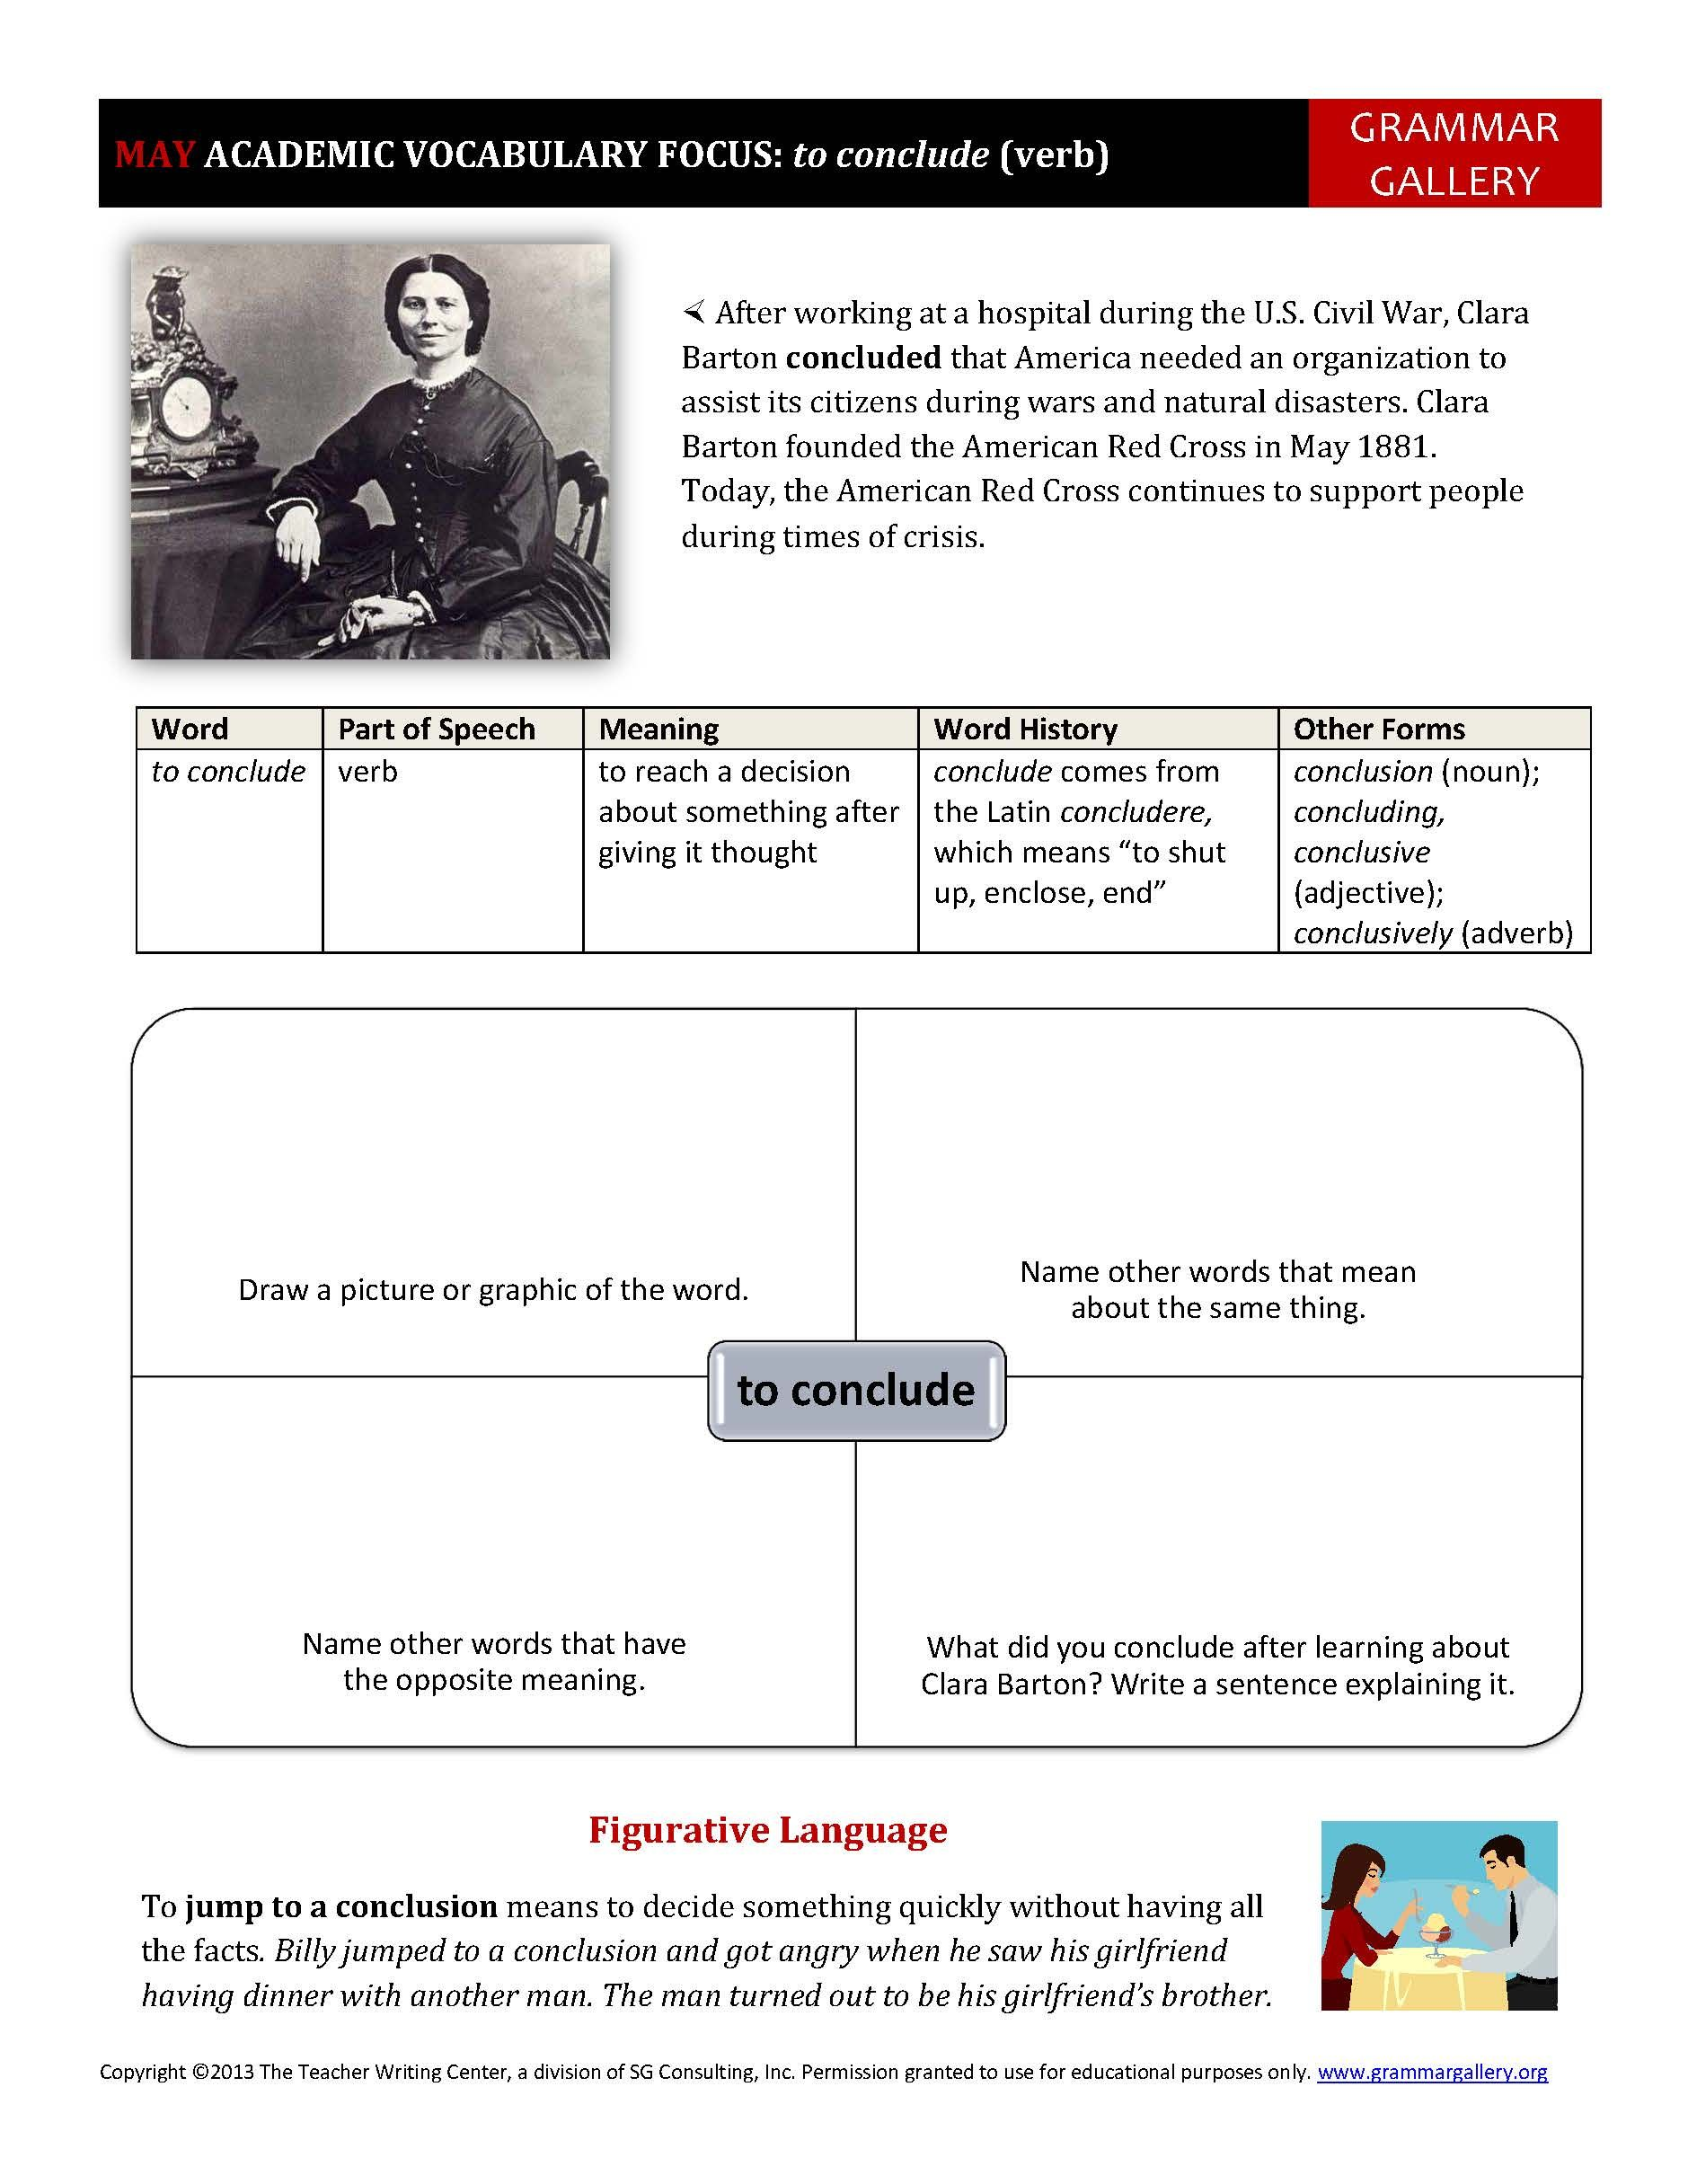 worksheet Academic Vocabulary Worksheets a worksheet to help middle school and high students develop their academic vocabulary mays